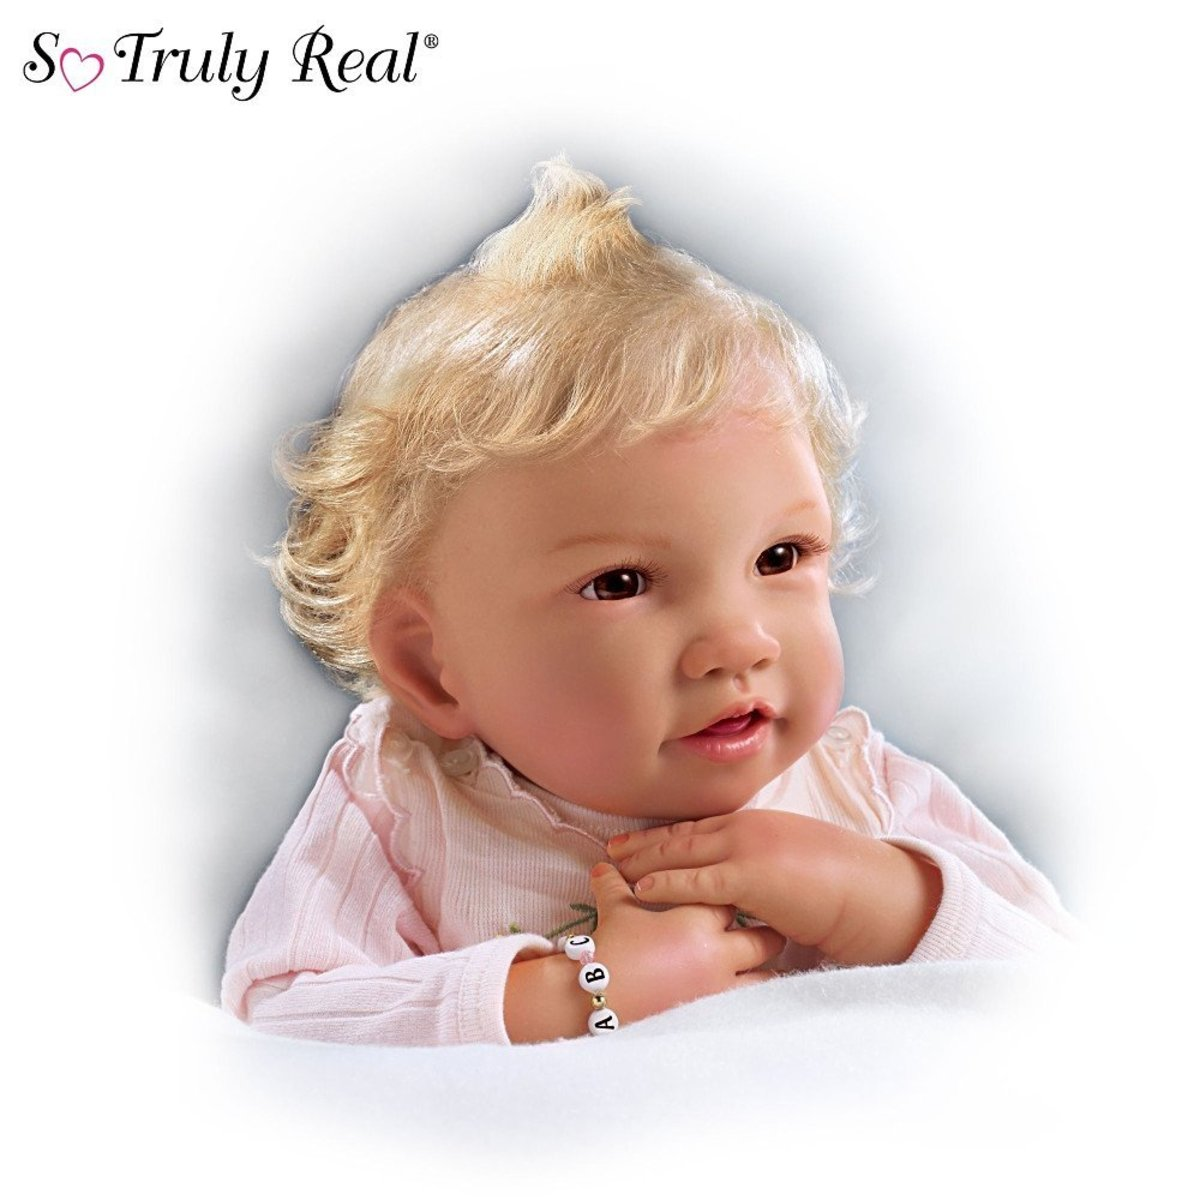 Reborn dolls are amazing!